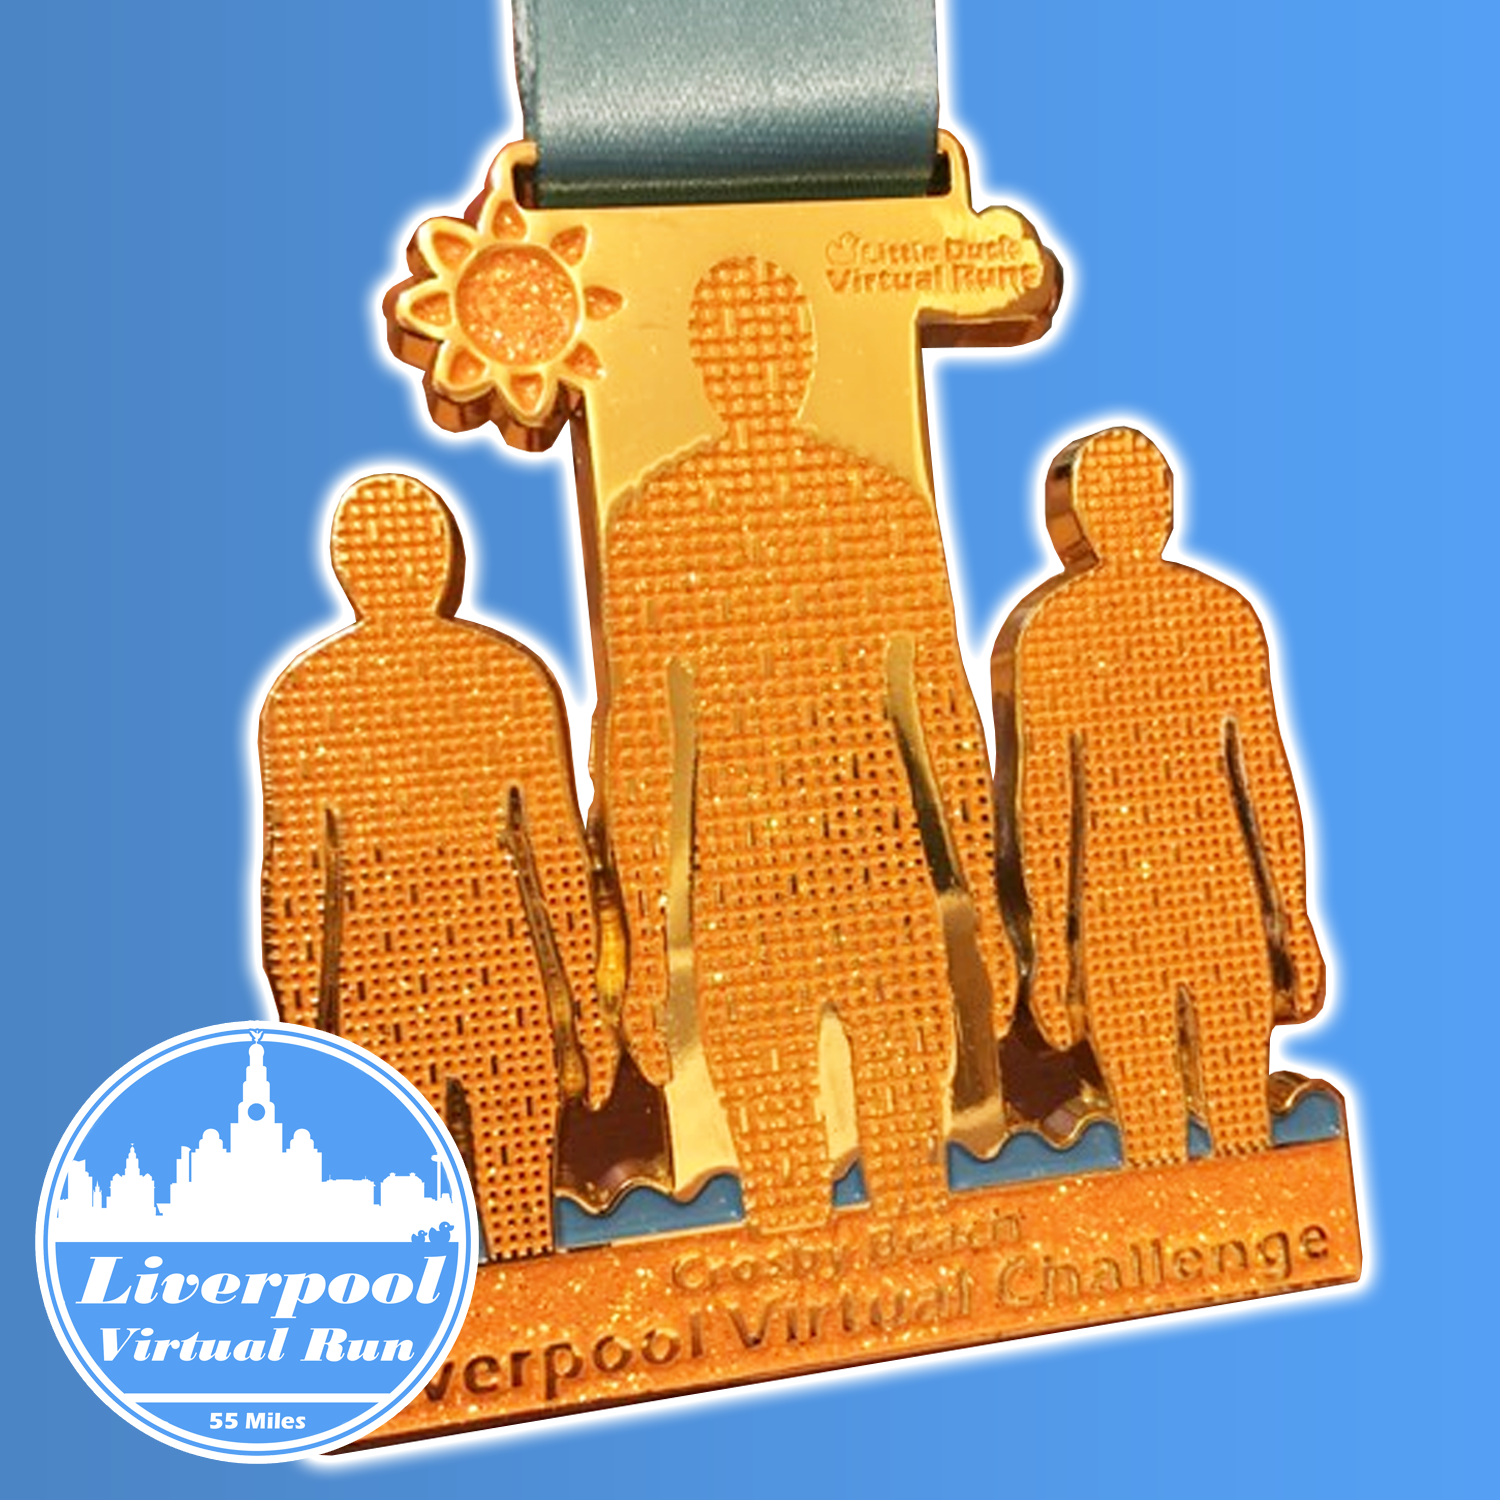 Liverpool 55 Mile Virtual Run ( (you don't have to do the 55 miles in one go, phew!)